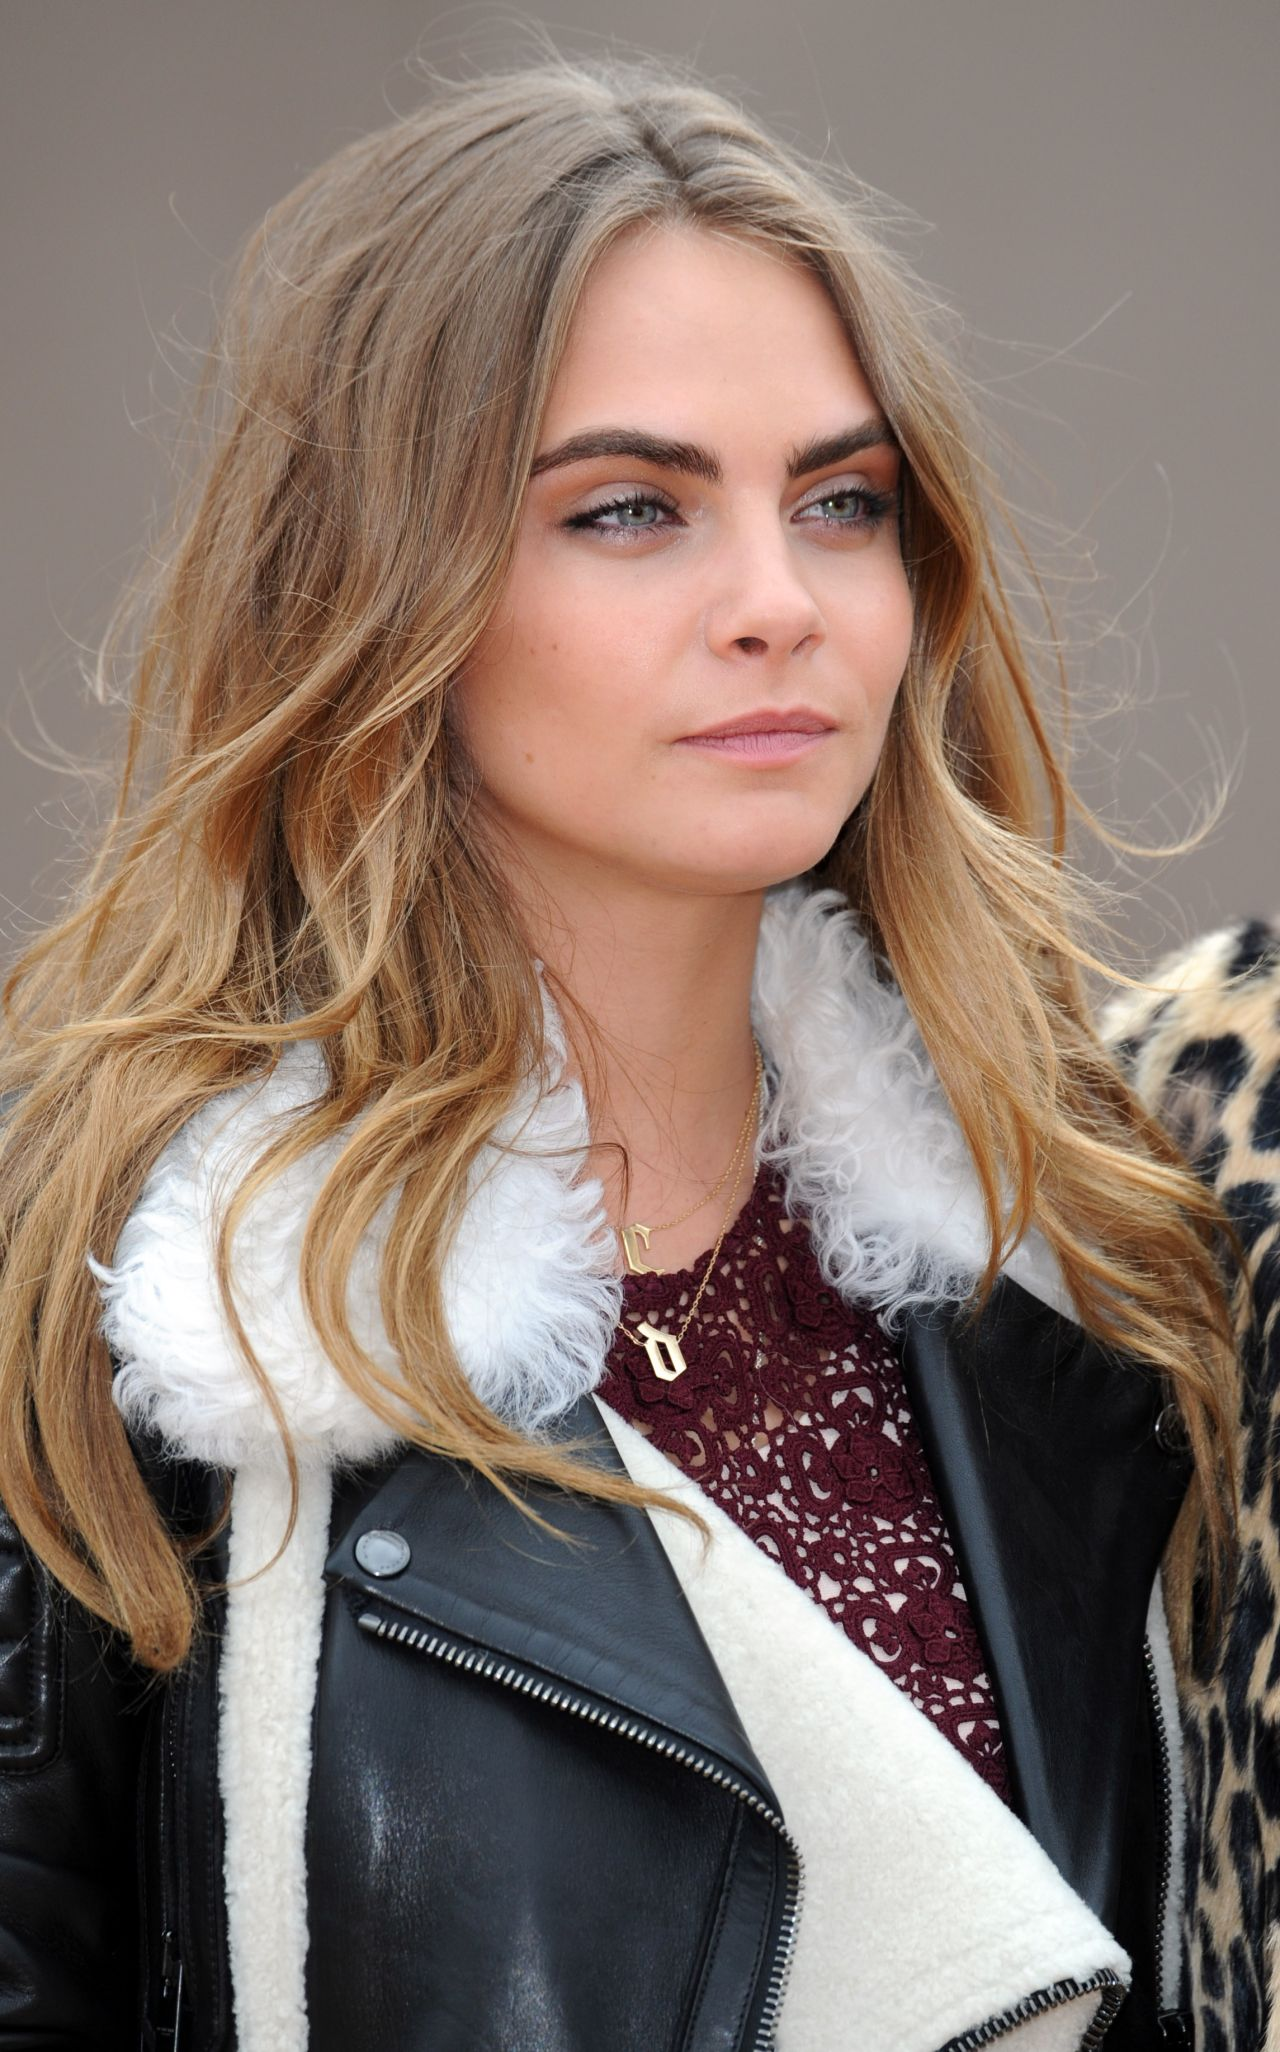 Cara Delevingne - 2015 Celebrity Photos